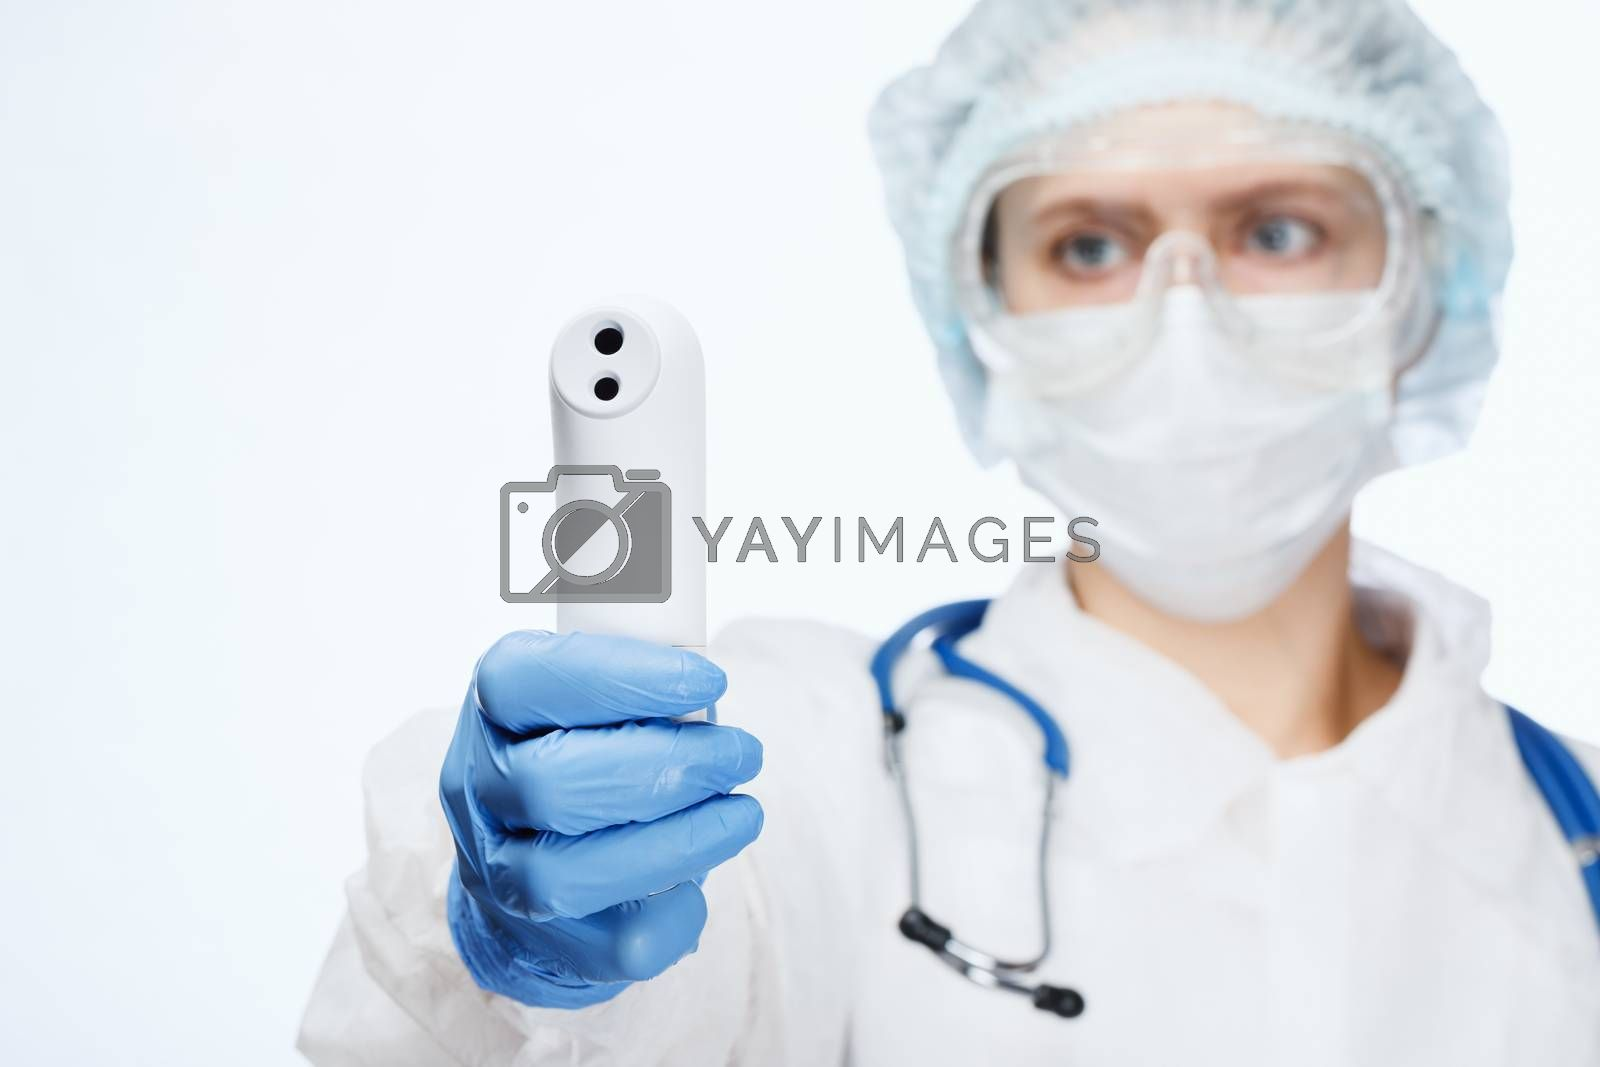 Close-up shot of doctor wearing protective suit and surgical mask using infrared forehead thermometer or thermometer gun to check body temperature for virus symptoms - coronavirus outbreak concept